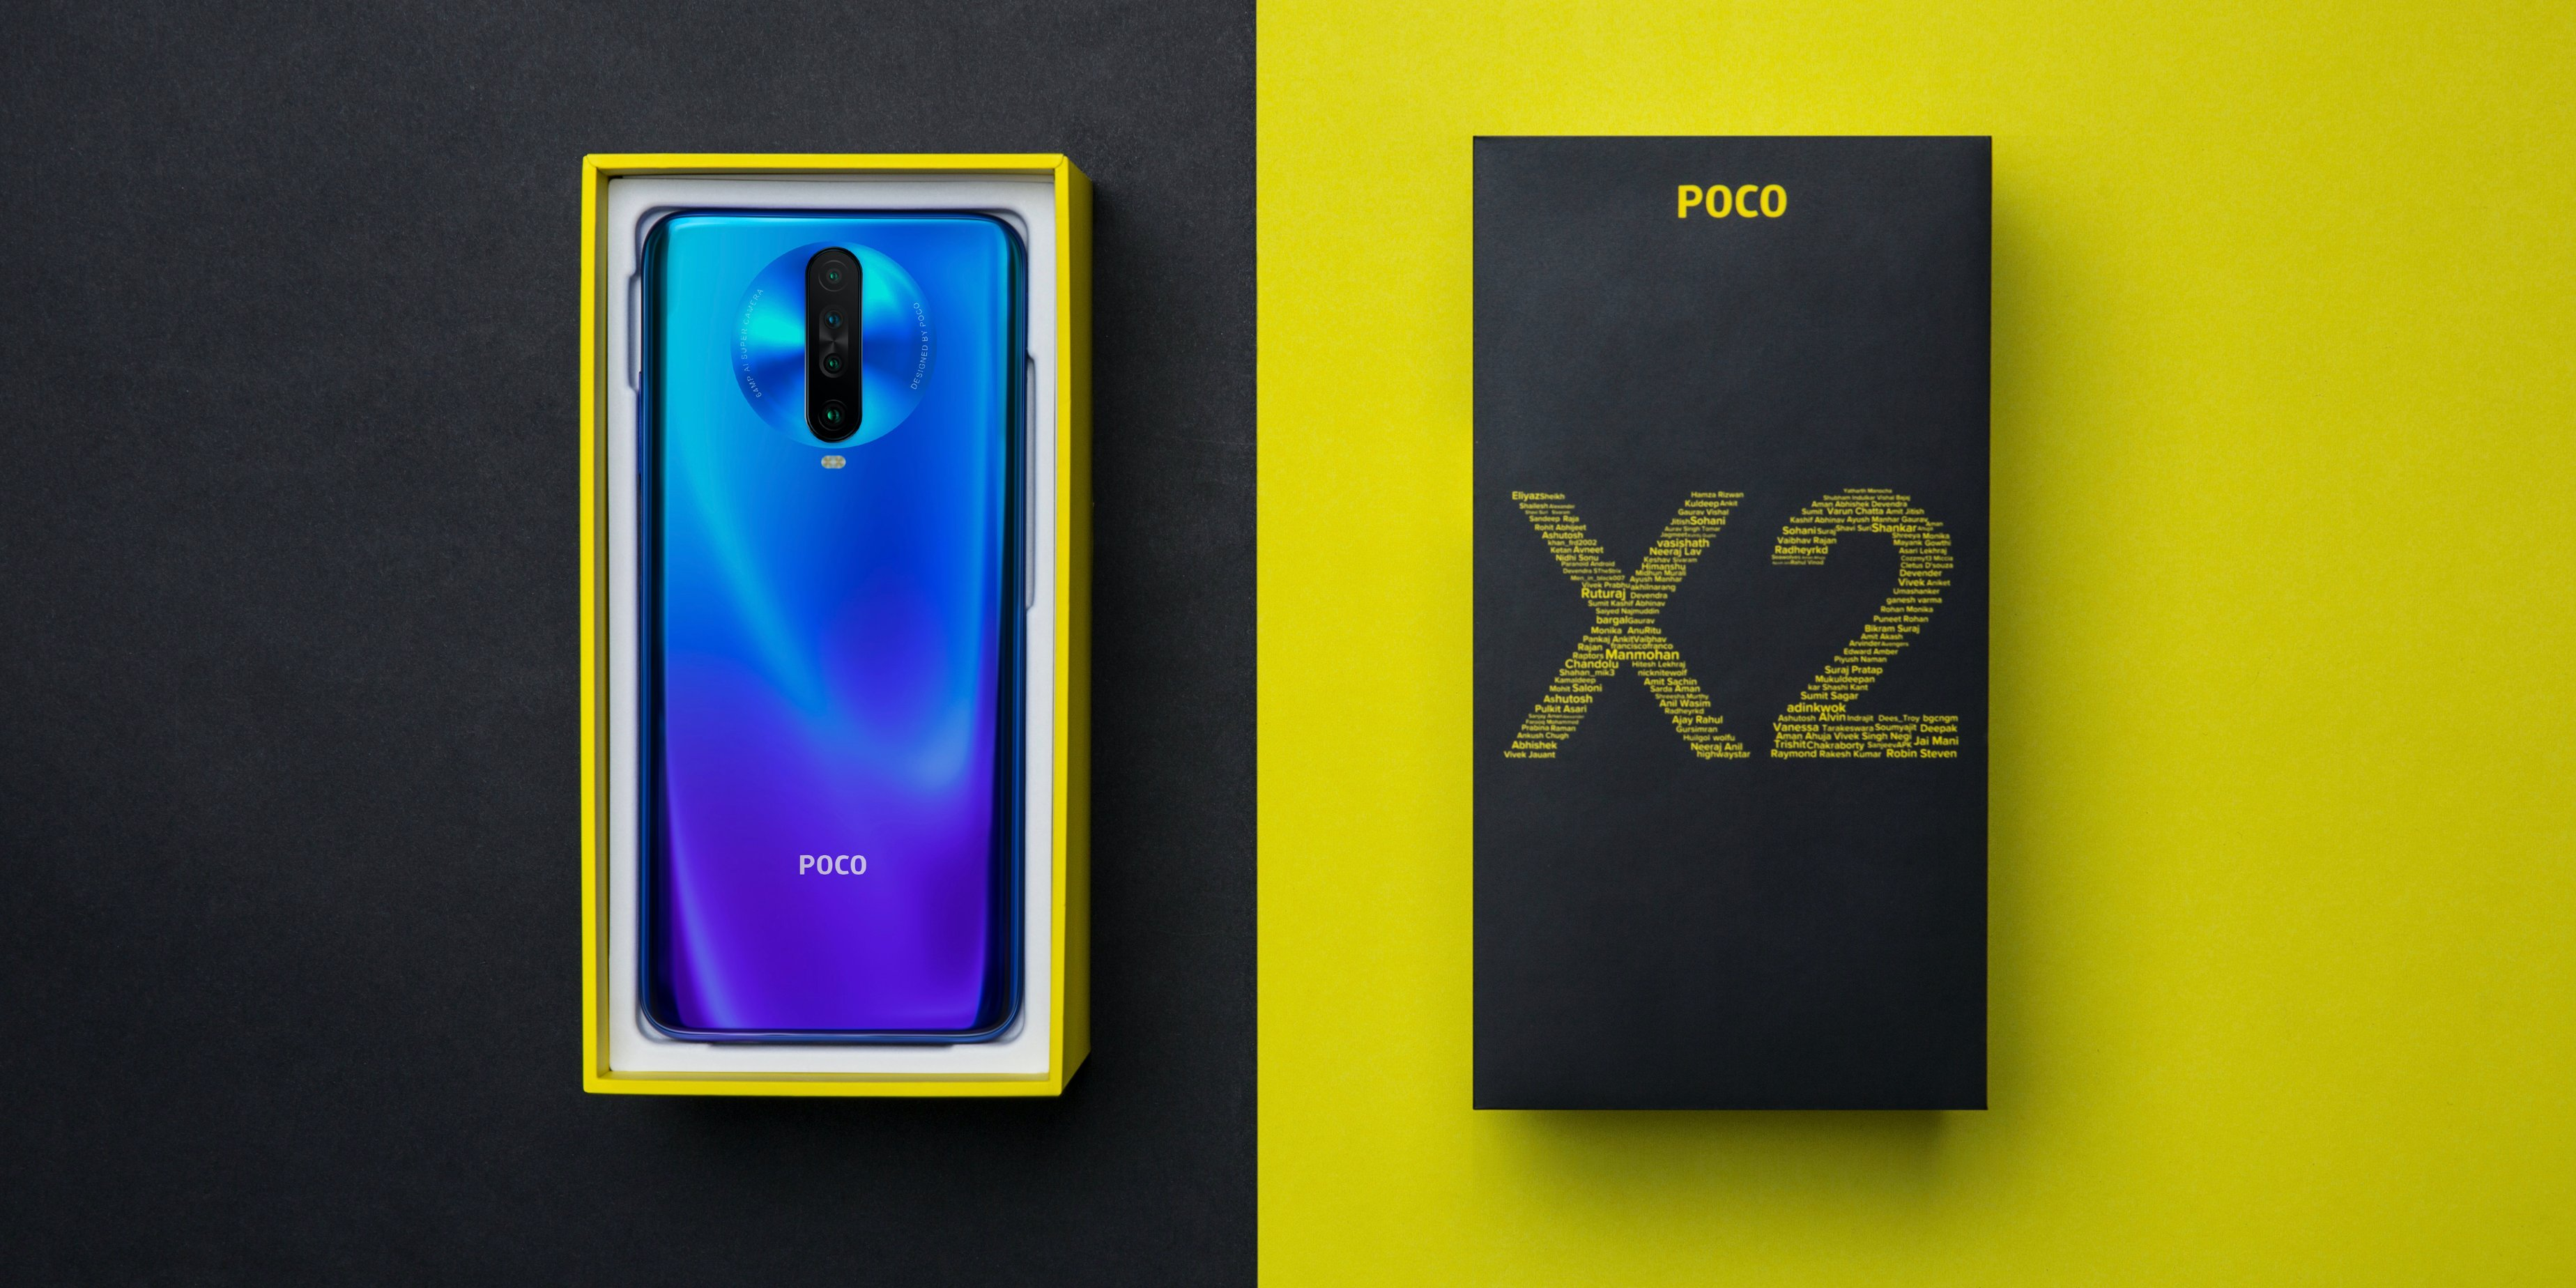 POCO X2 released for usd225 with 120Hz display, 64MP IMX686 Snapdragon 730G